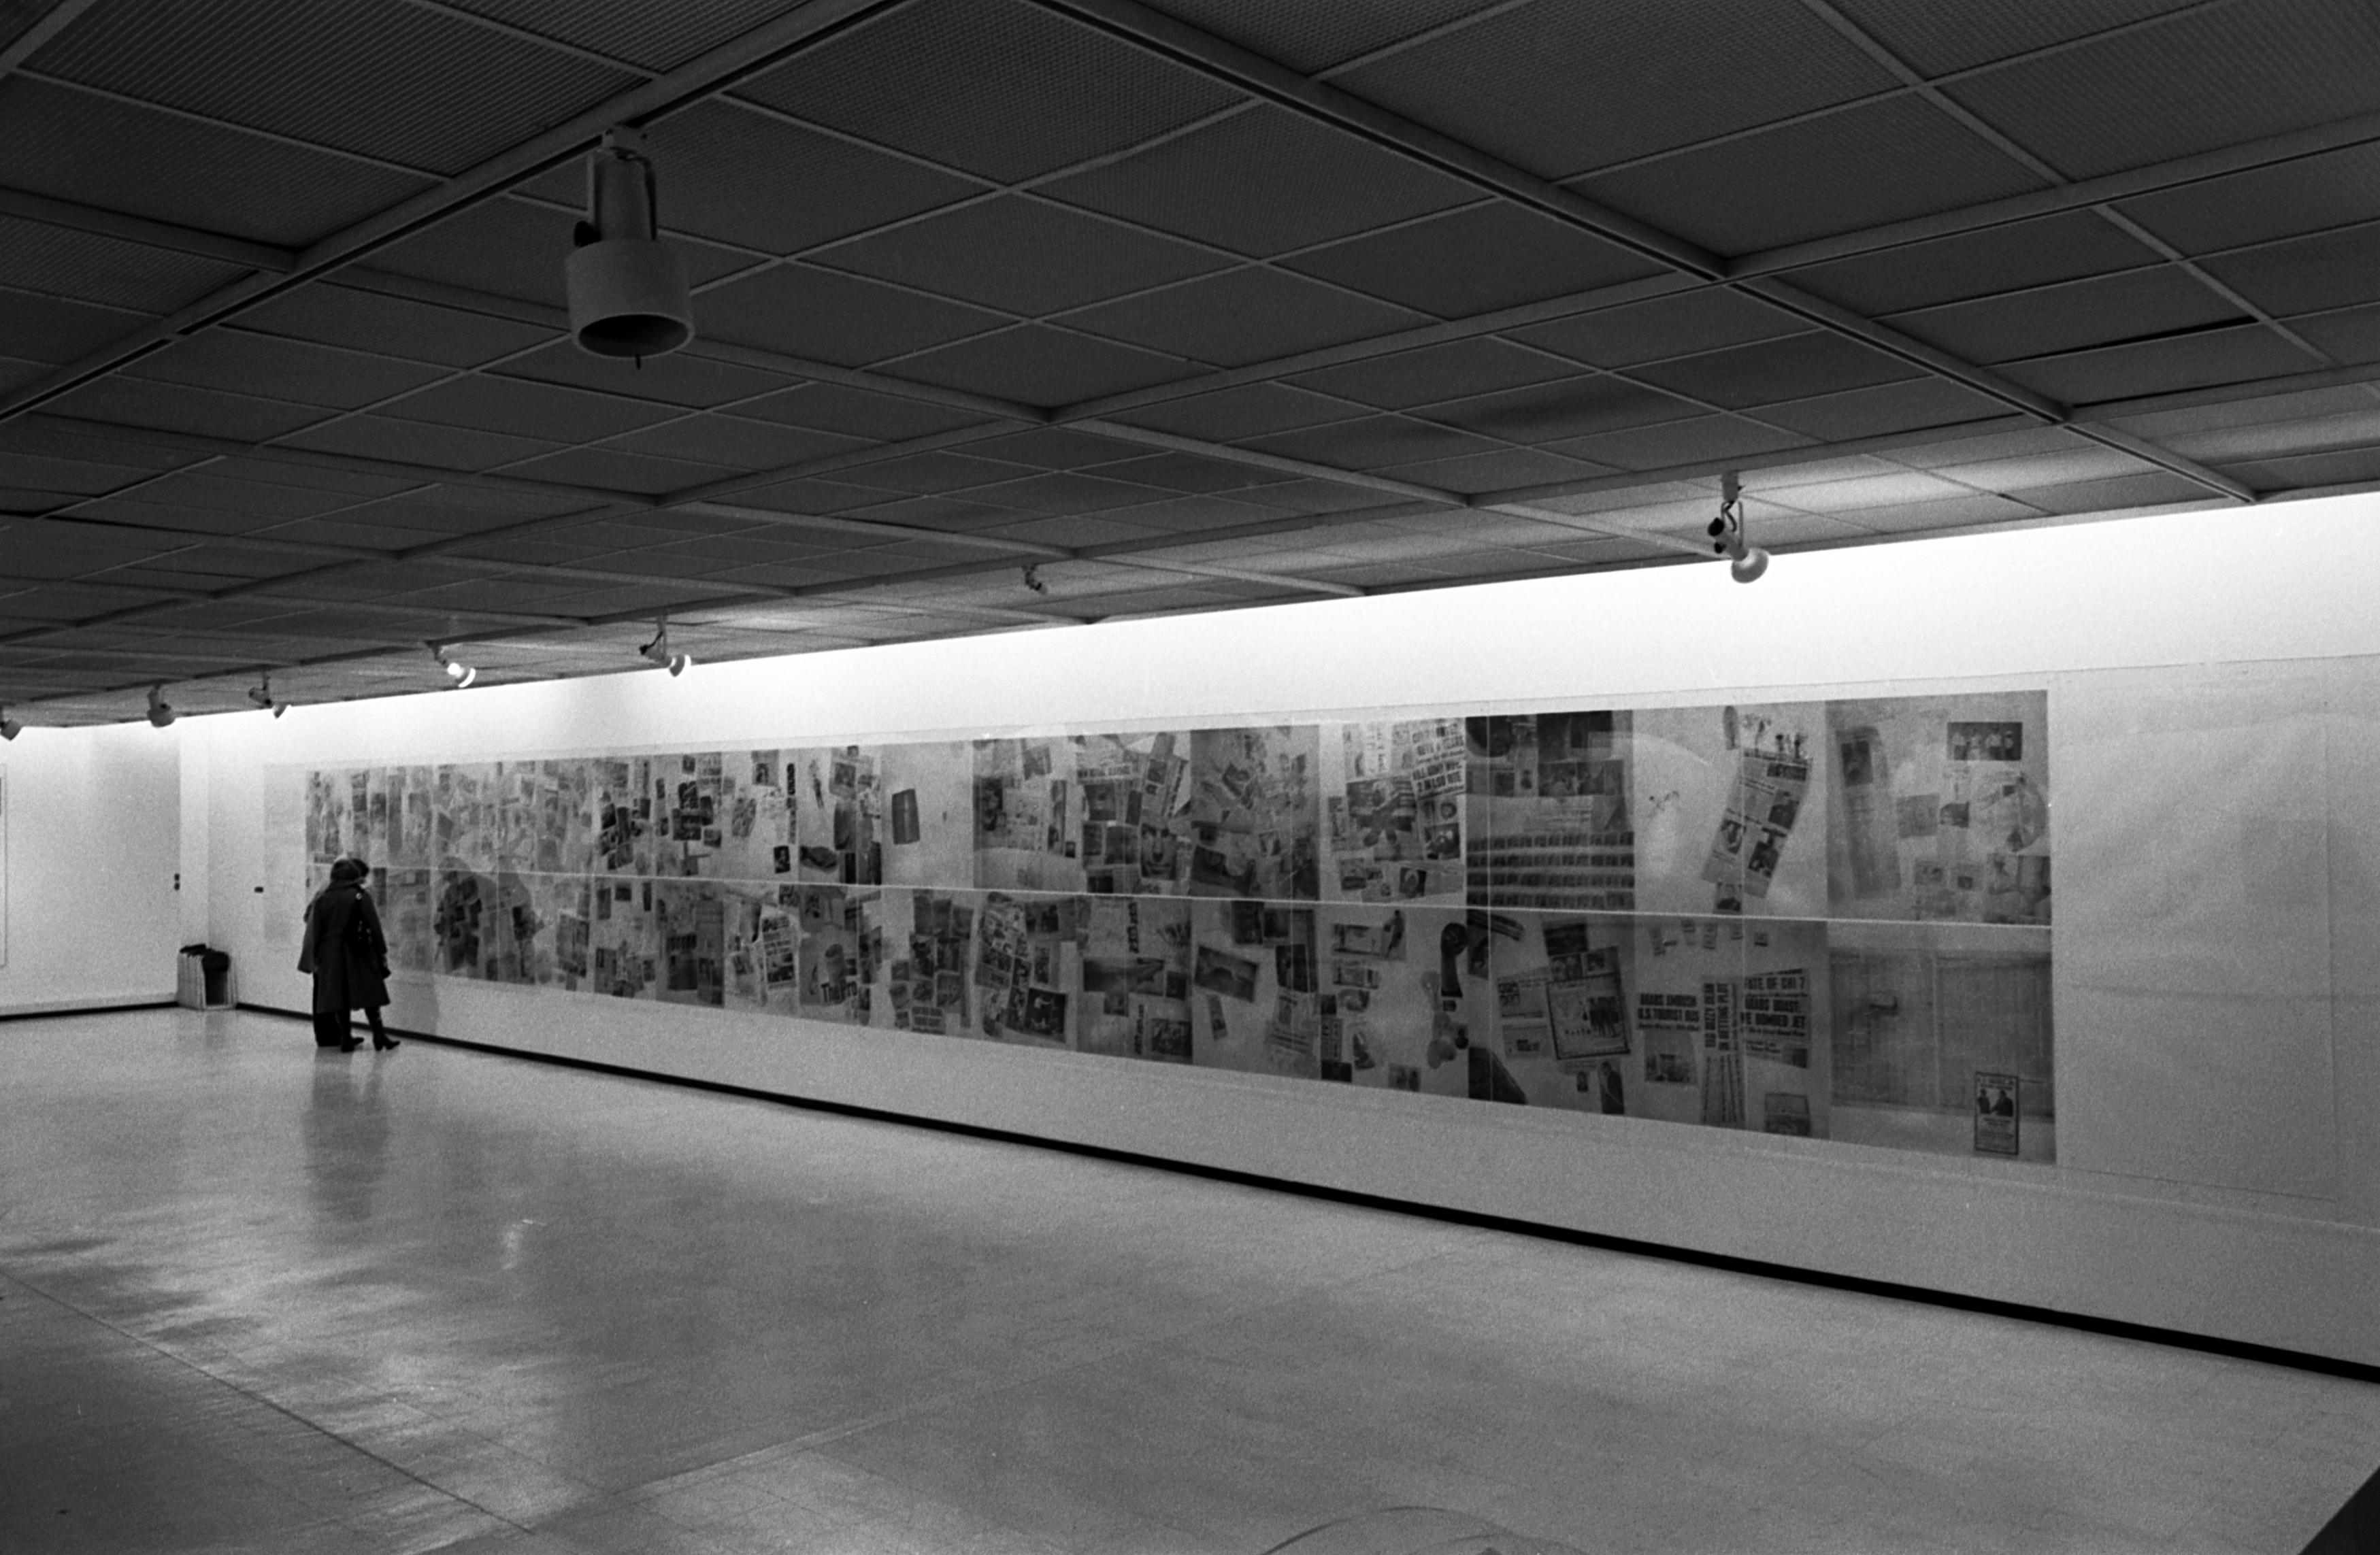 A black-and-white photo shows an installation view of dozens of graphic artworks. Two people view the works.